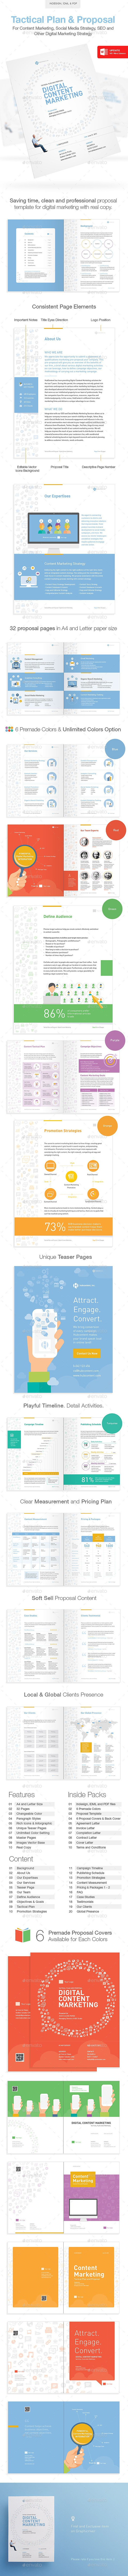 Clean Content Marketing Proposal Template | #marketingproposal #proposaltemplate #proposaldesign | Download: http://graphicriver.net/item/clean-content-marketing-proposal/10060275?ref=ksioks